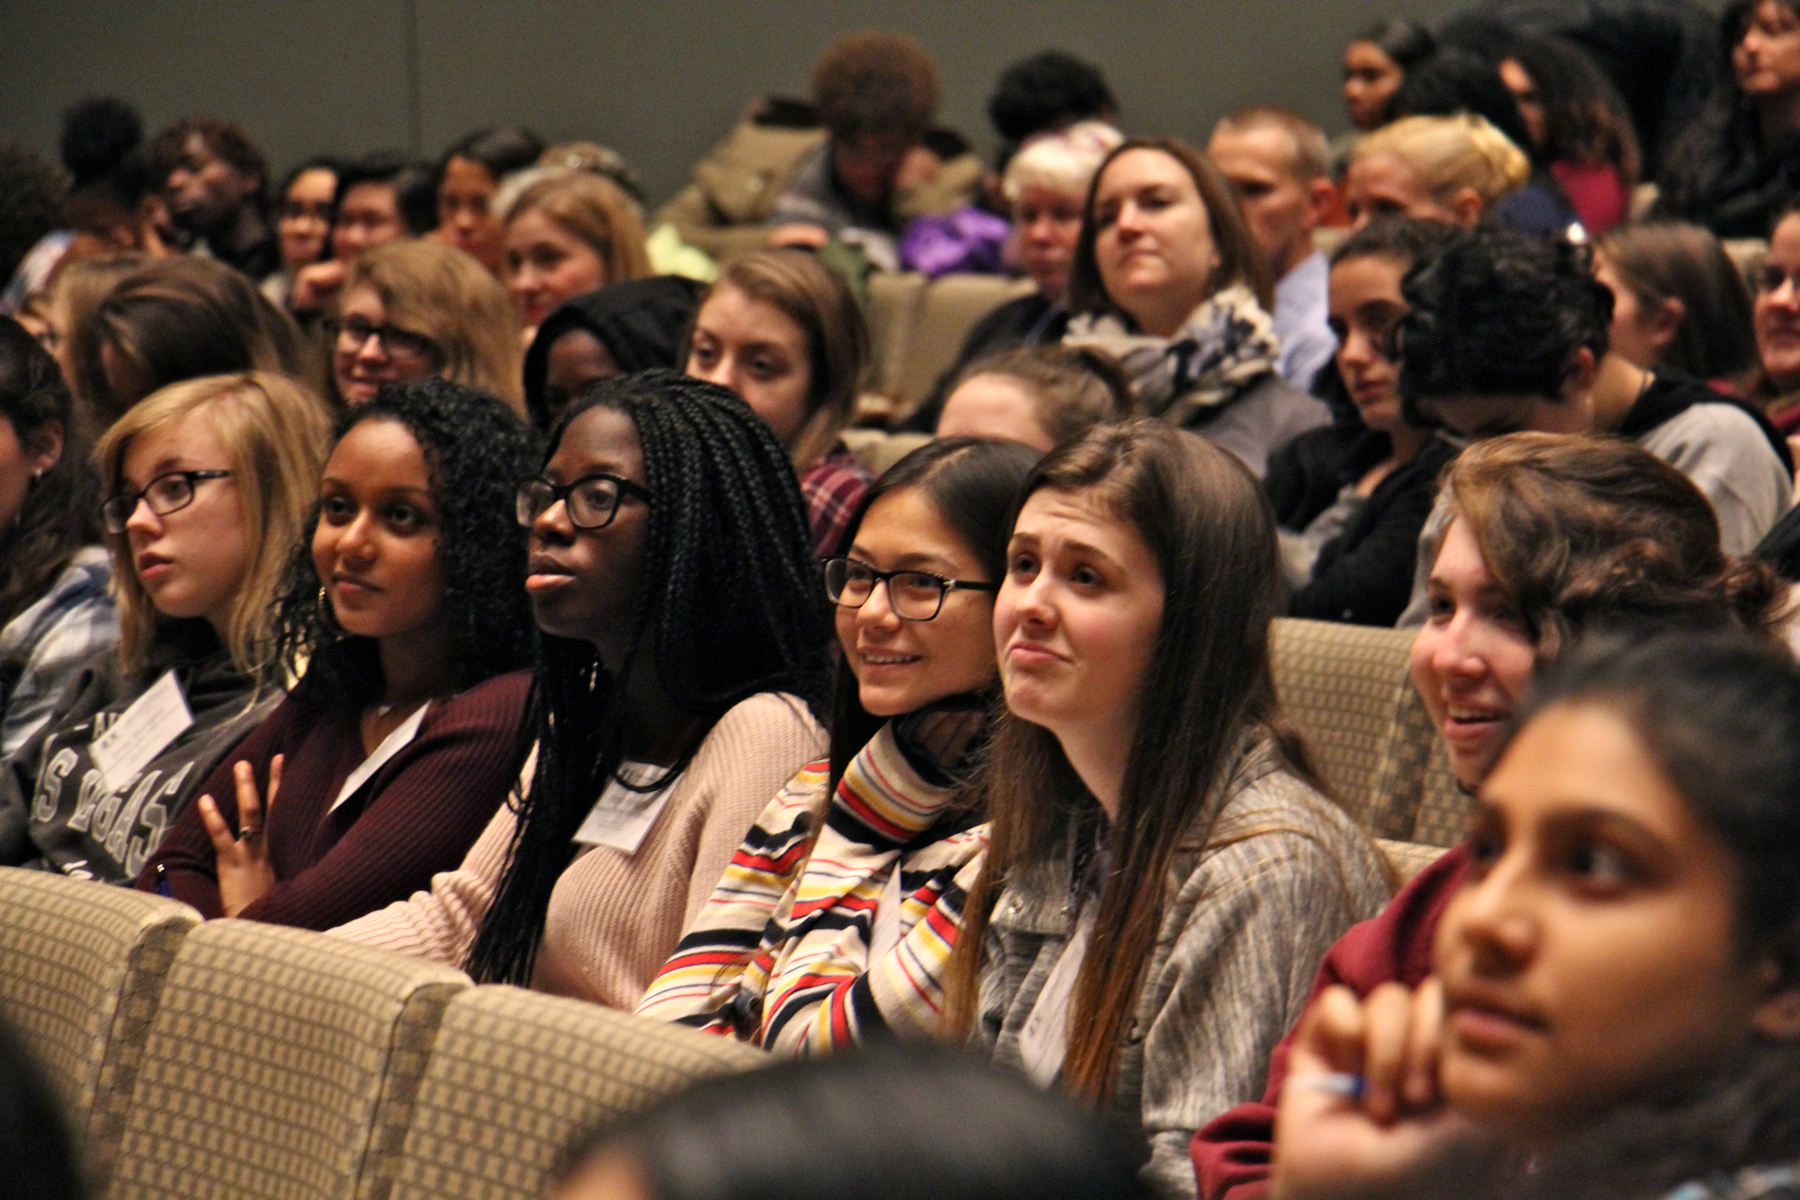 Students at the Anti-Defamation League's annual Youth Conference listen to the keynote speech by Akbar Hossain.